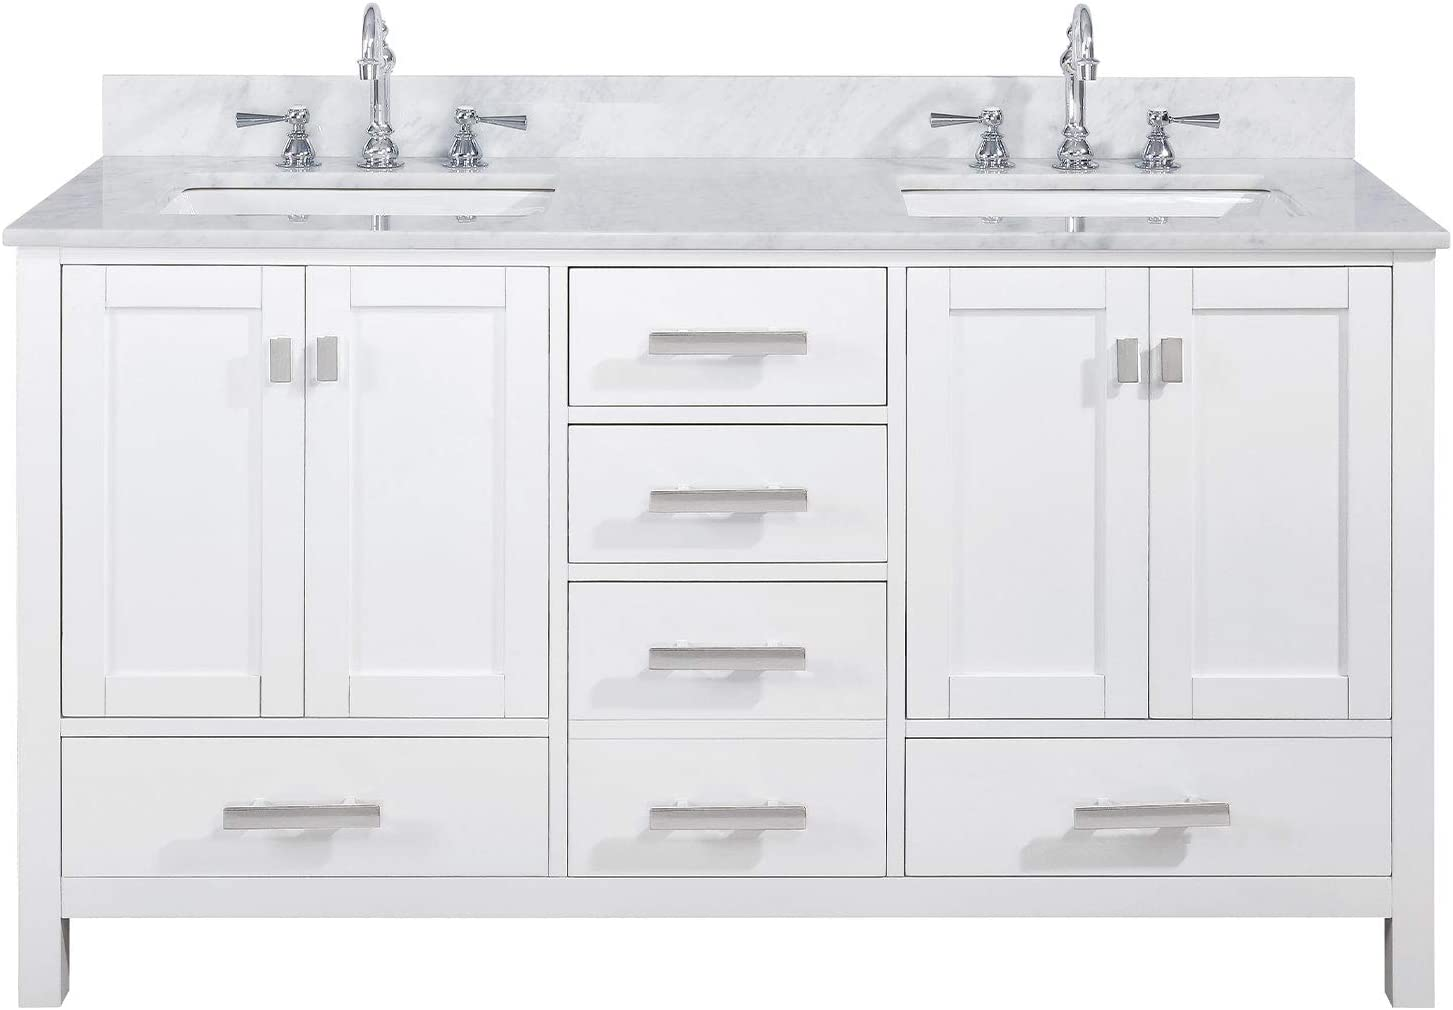 Online Fashion Shopping Luca Kitchen Bath Lc60pbw Tuscan 60 Double Bathroom Vanity Set In Midnight Blue With Carrara Marble Top And Sink Save Up To 50 Mhiron Hollandia Co Il